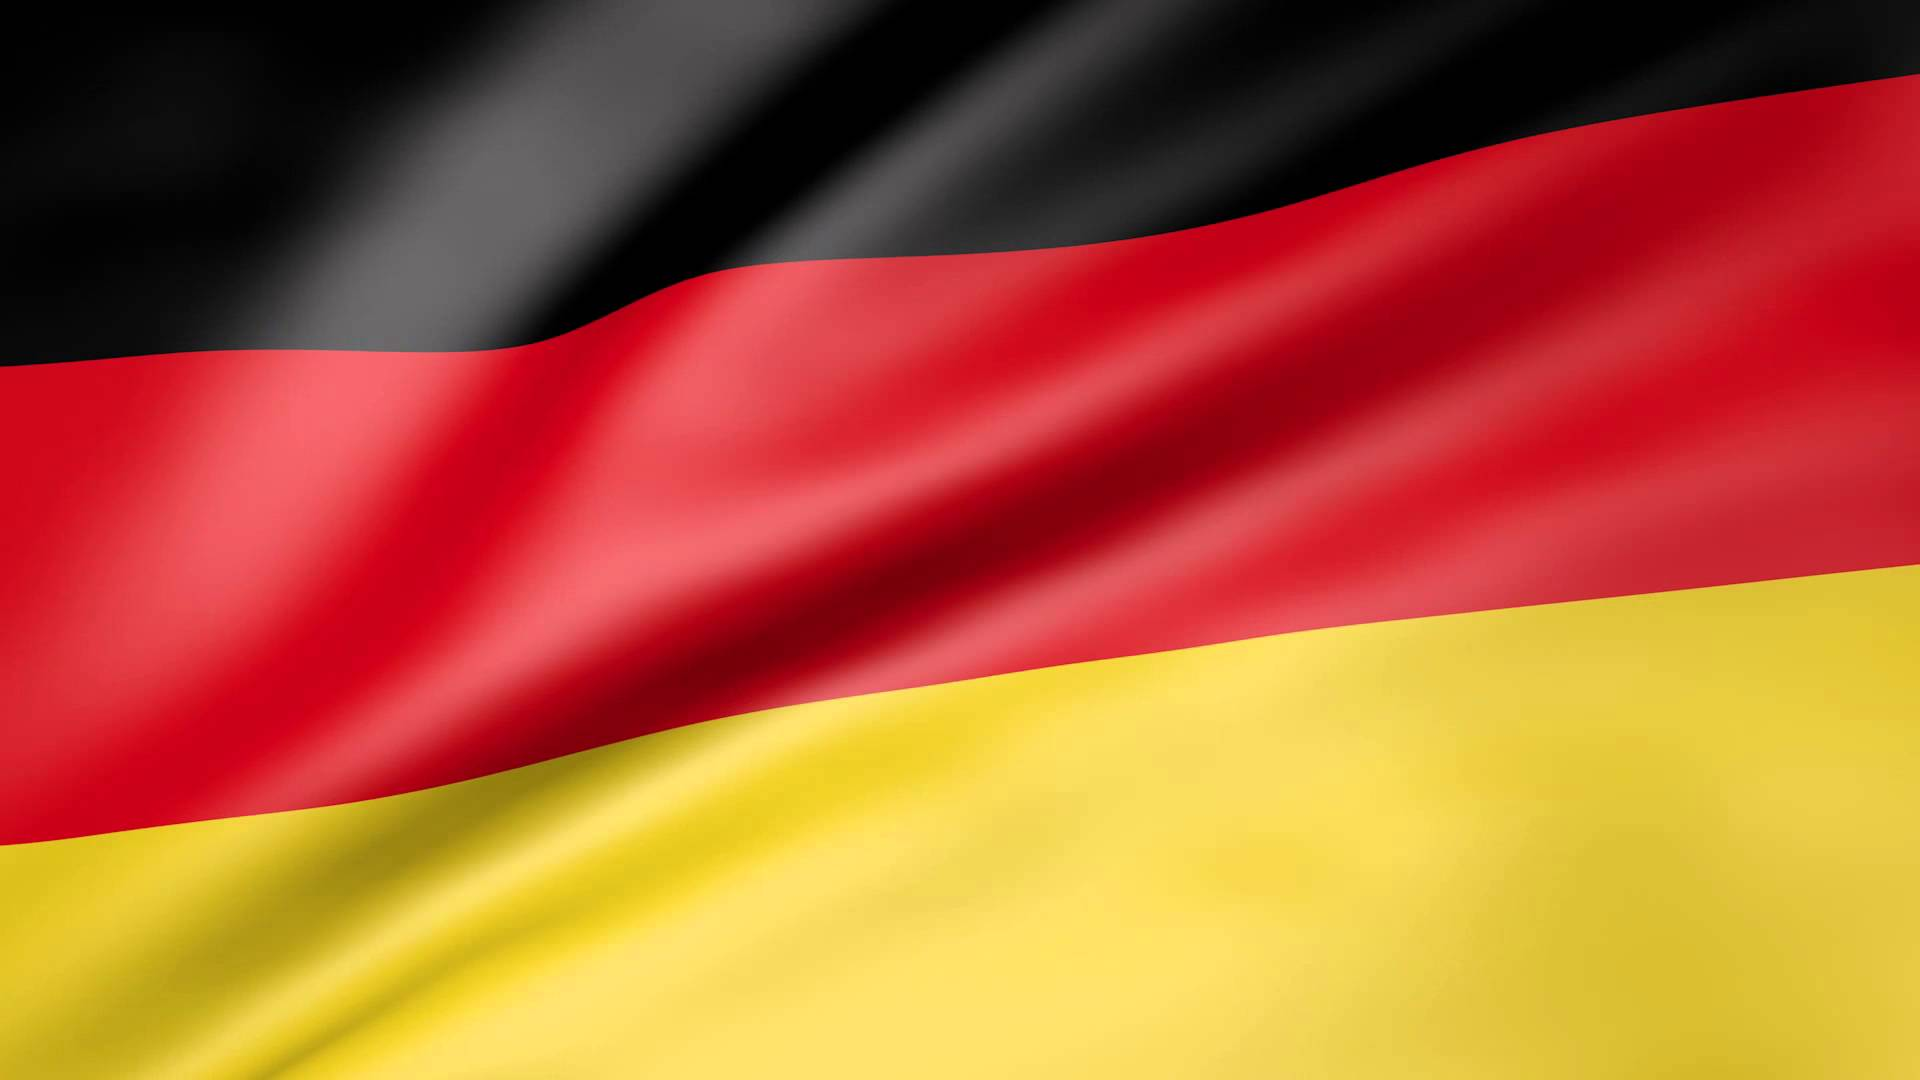 German Deutsch Is A West Germanic Language That Is Mainly Spoken In Central Europe It Is The Most Widely Spoken And Official Or Coofficial Language In Germany